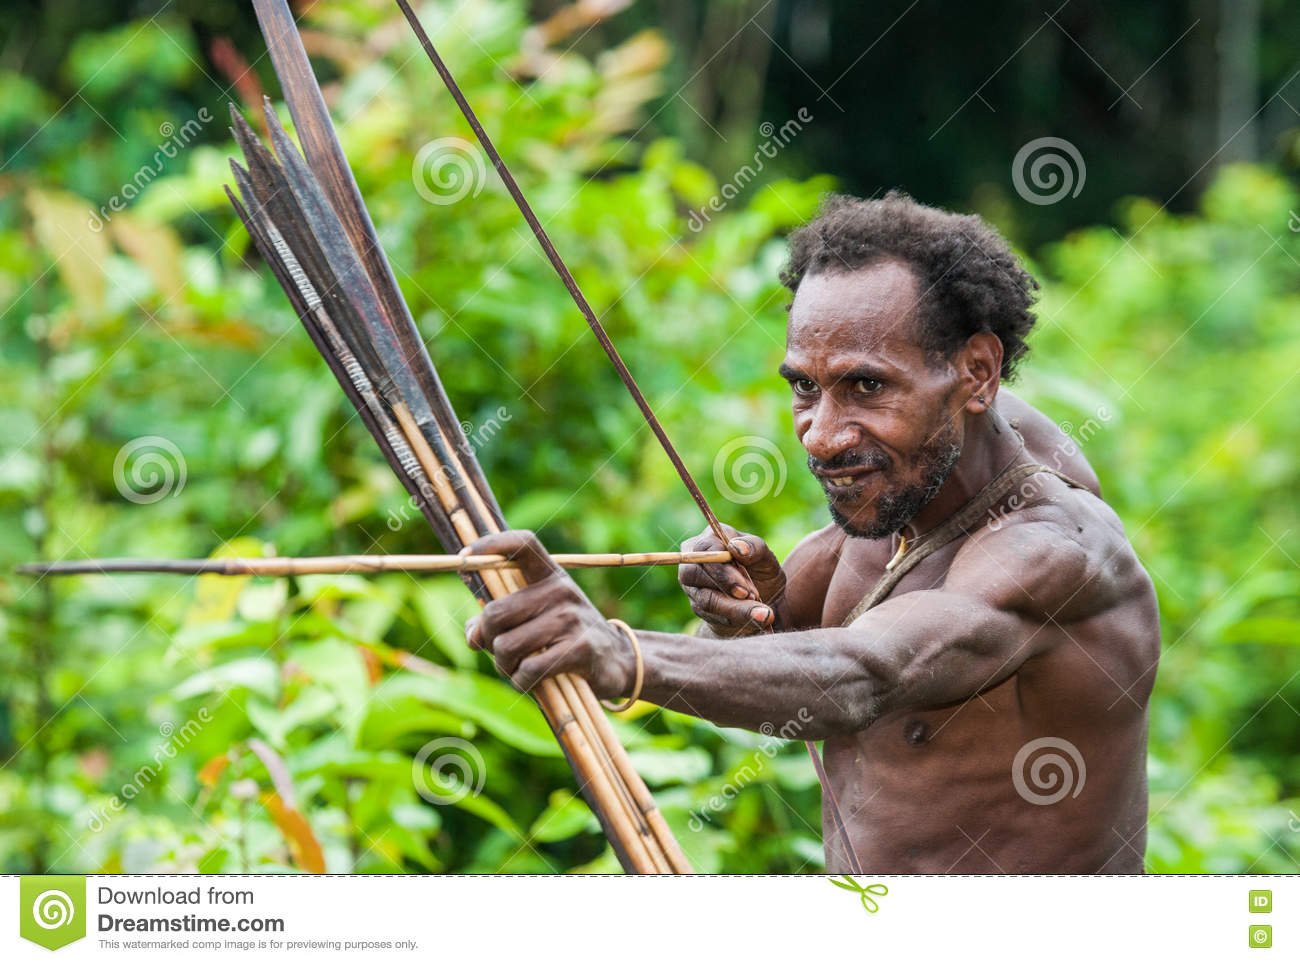 Images of Korowai Tribe Cannibals Nat Geo - #rock-cafe